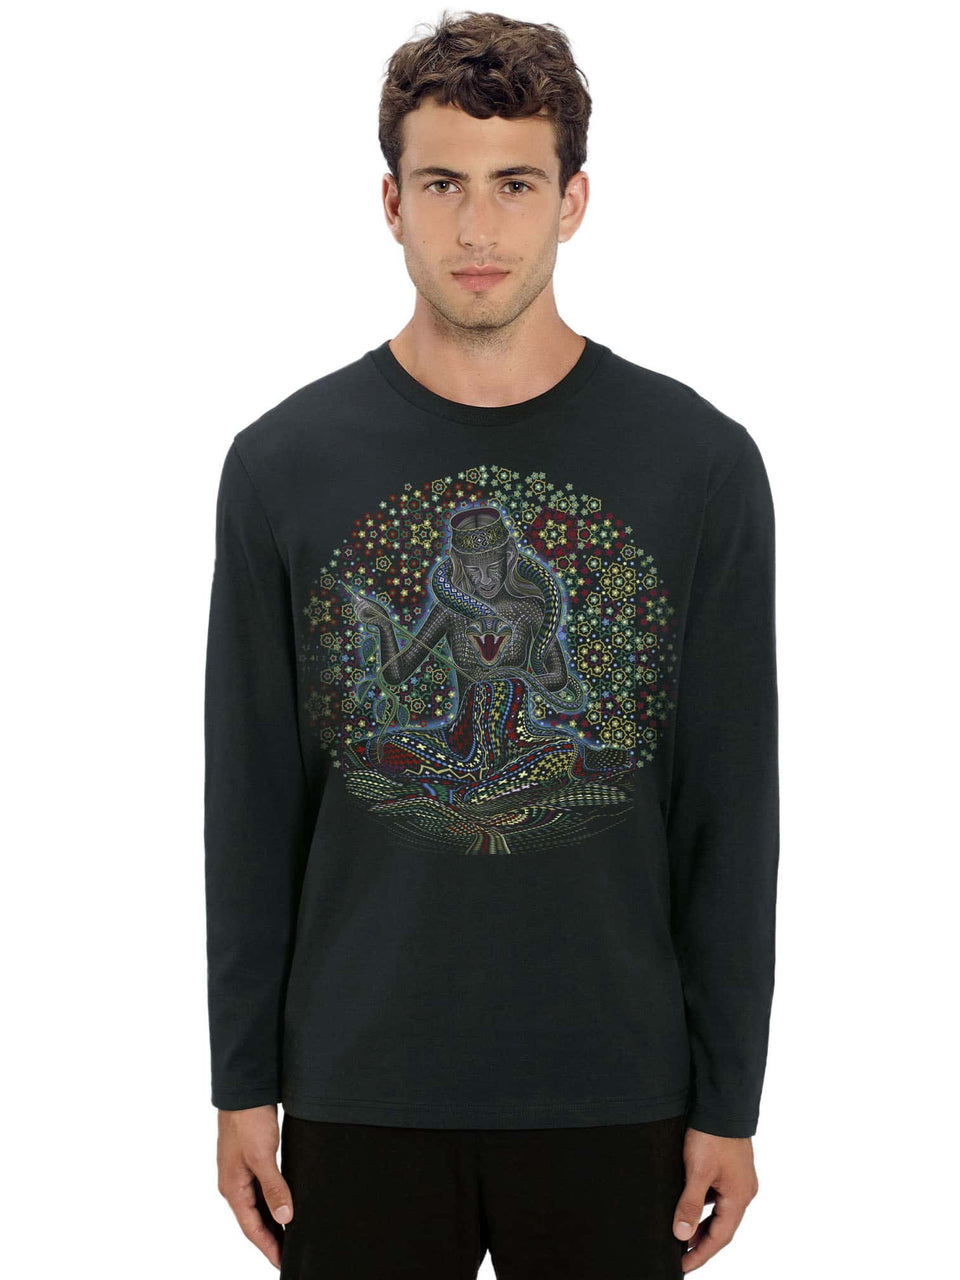 Song Weaving Made To Order Men Long Sleeve T-shirt - Black